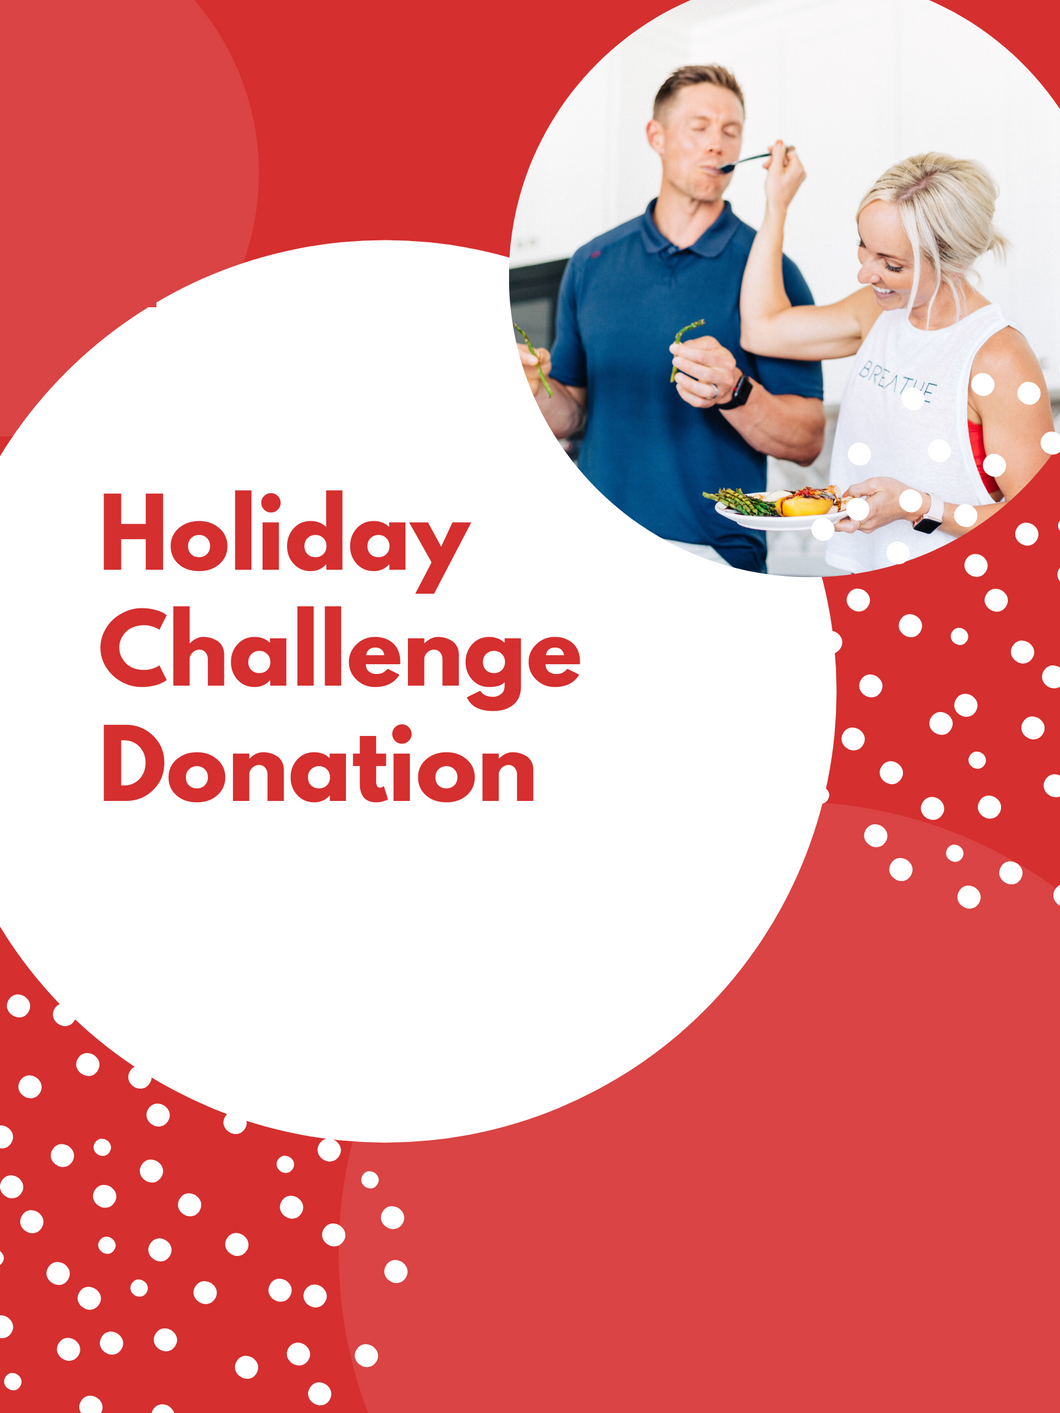 Holiday Challenge Donation